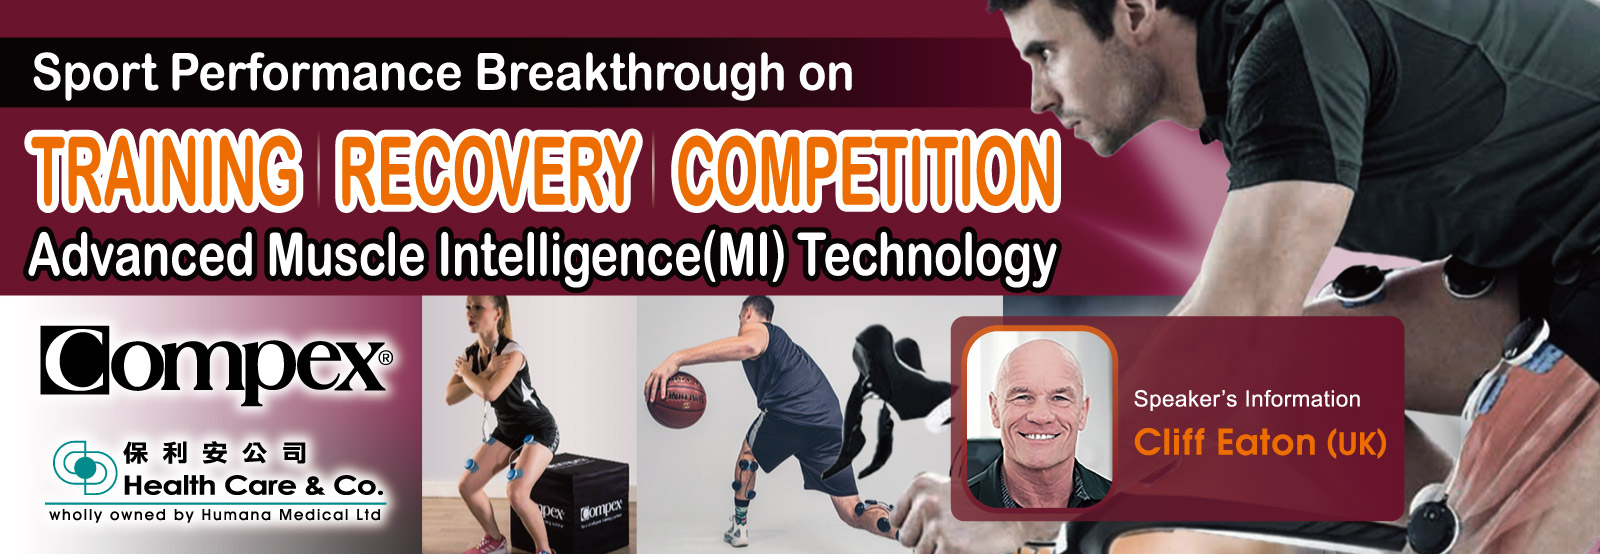 Sport Performance Breakthrough on TRAINING // RECOVERY // COMPETITION - Advanced Muscle Intelligence(MI)Technology